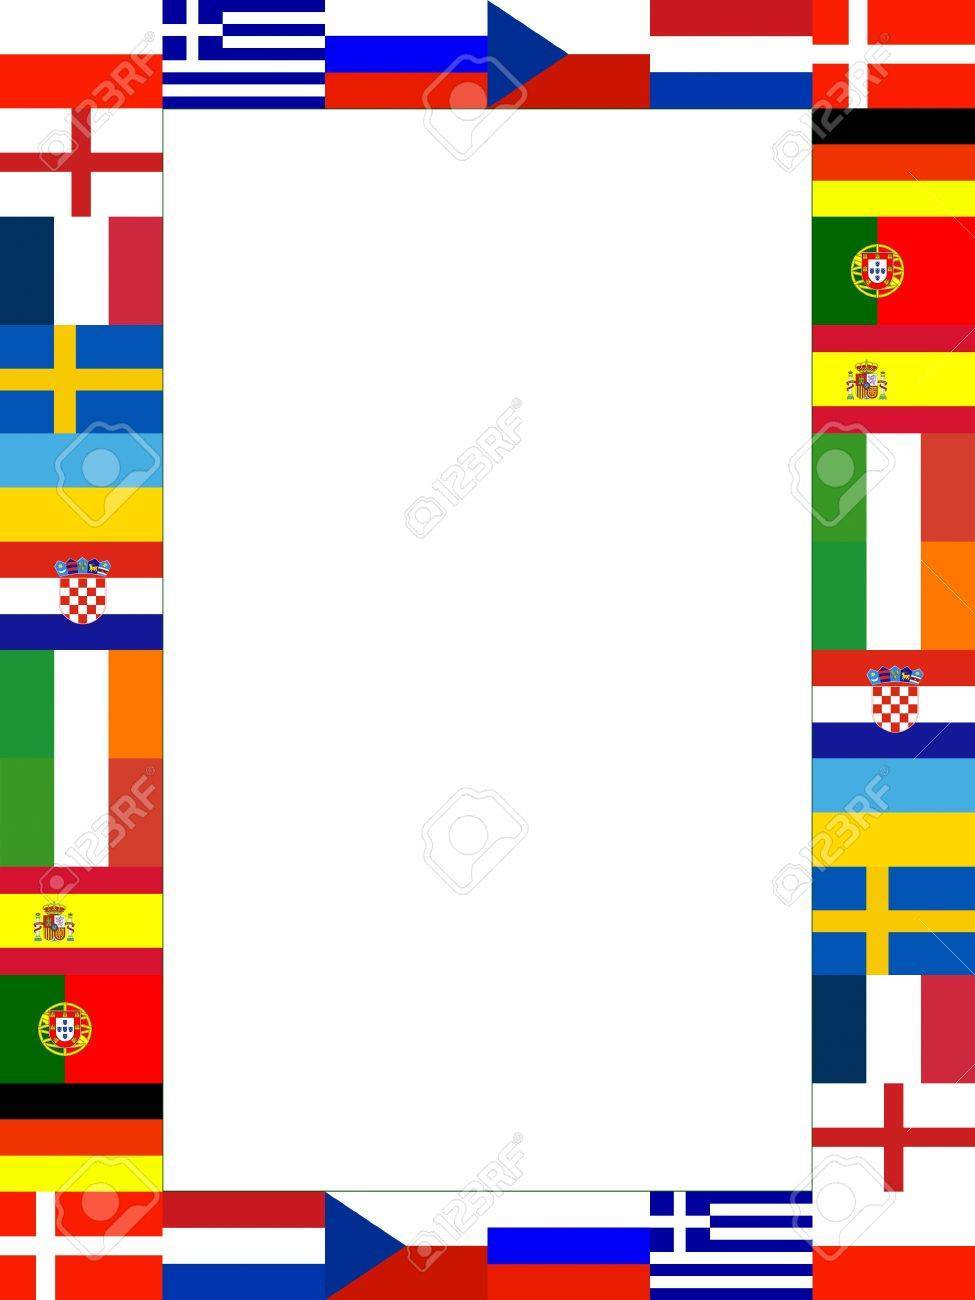 16 National Flag Frame Pattern With White Background Stock Photo ...